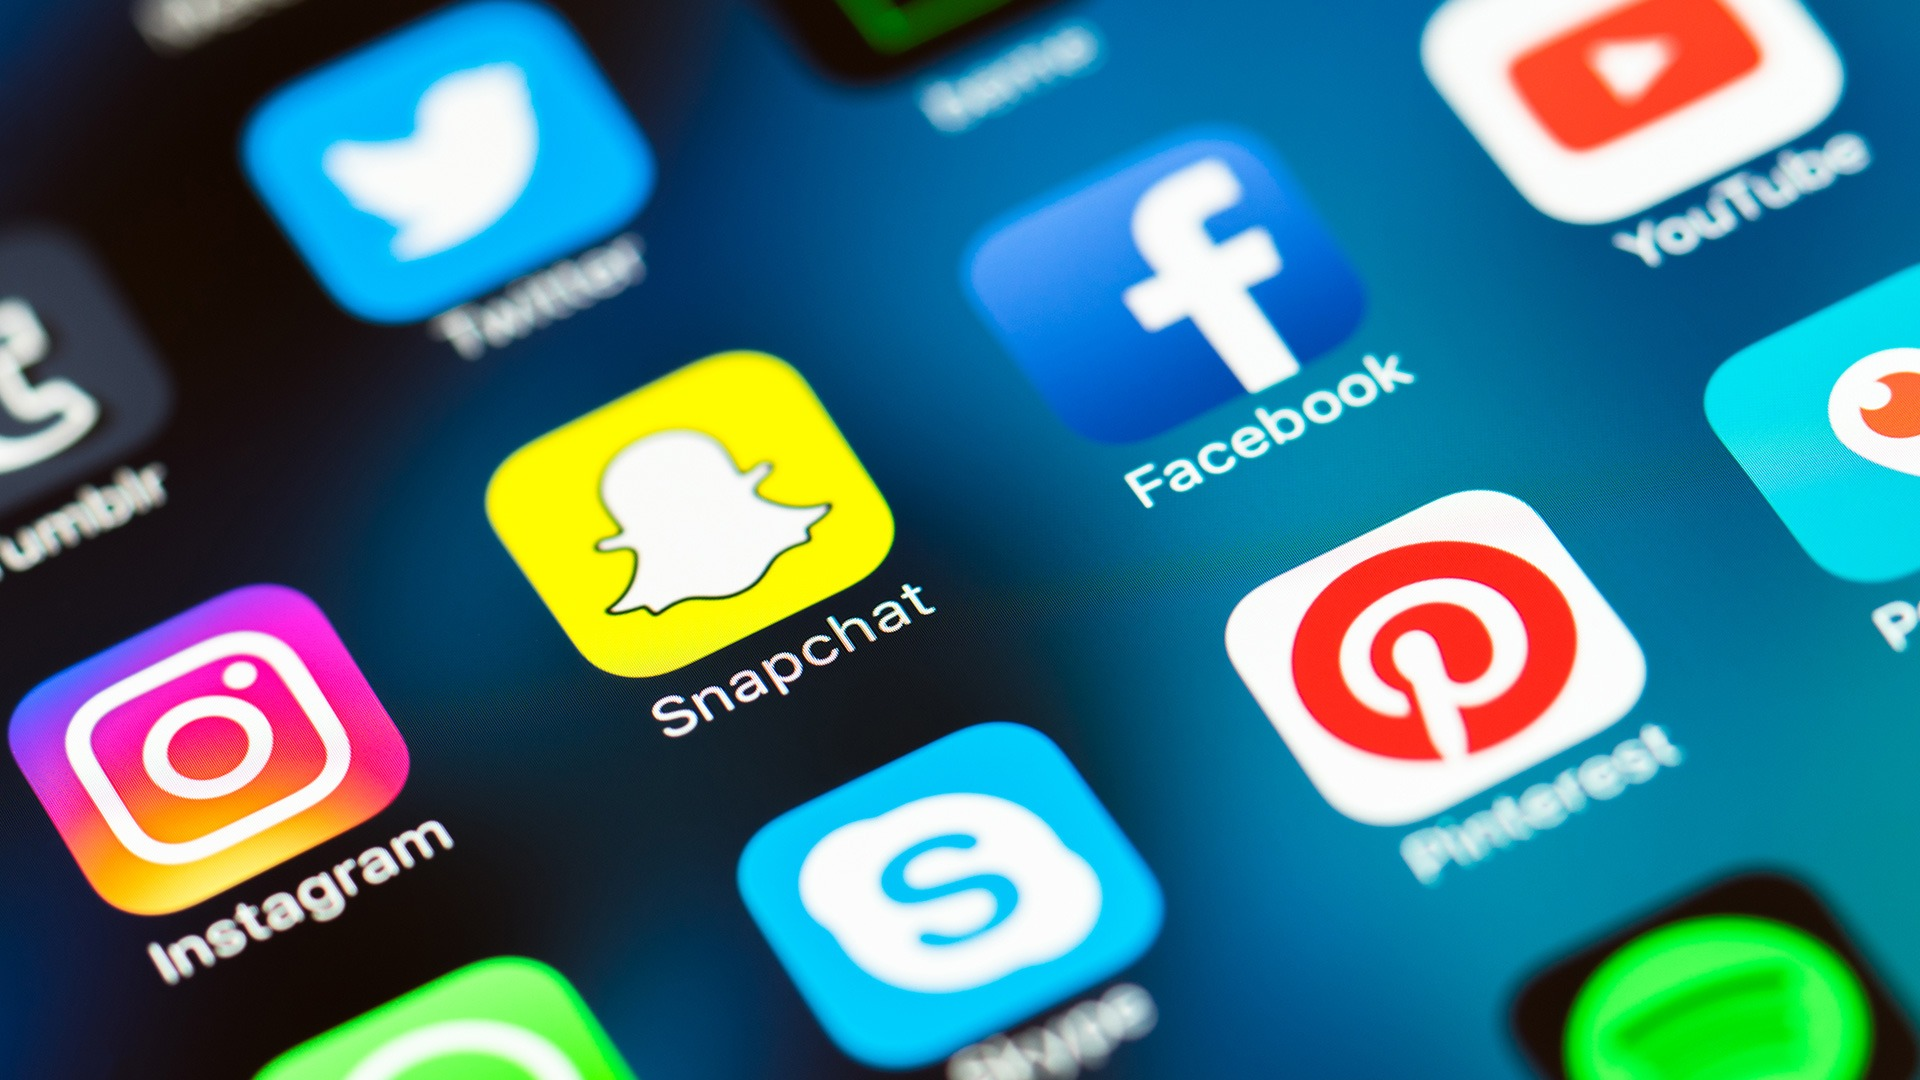 Top Amazing Social Media Facts And Statistics You Should Know!